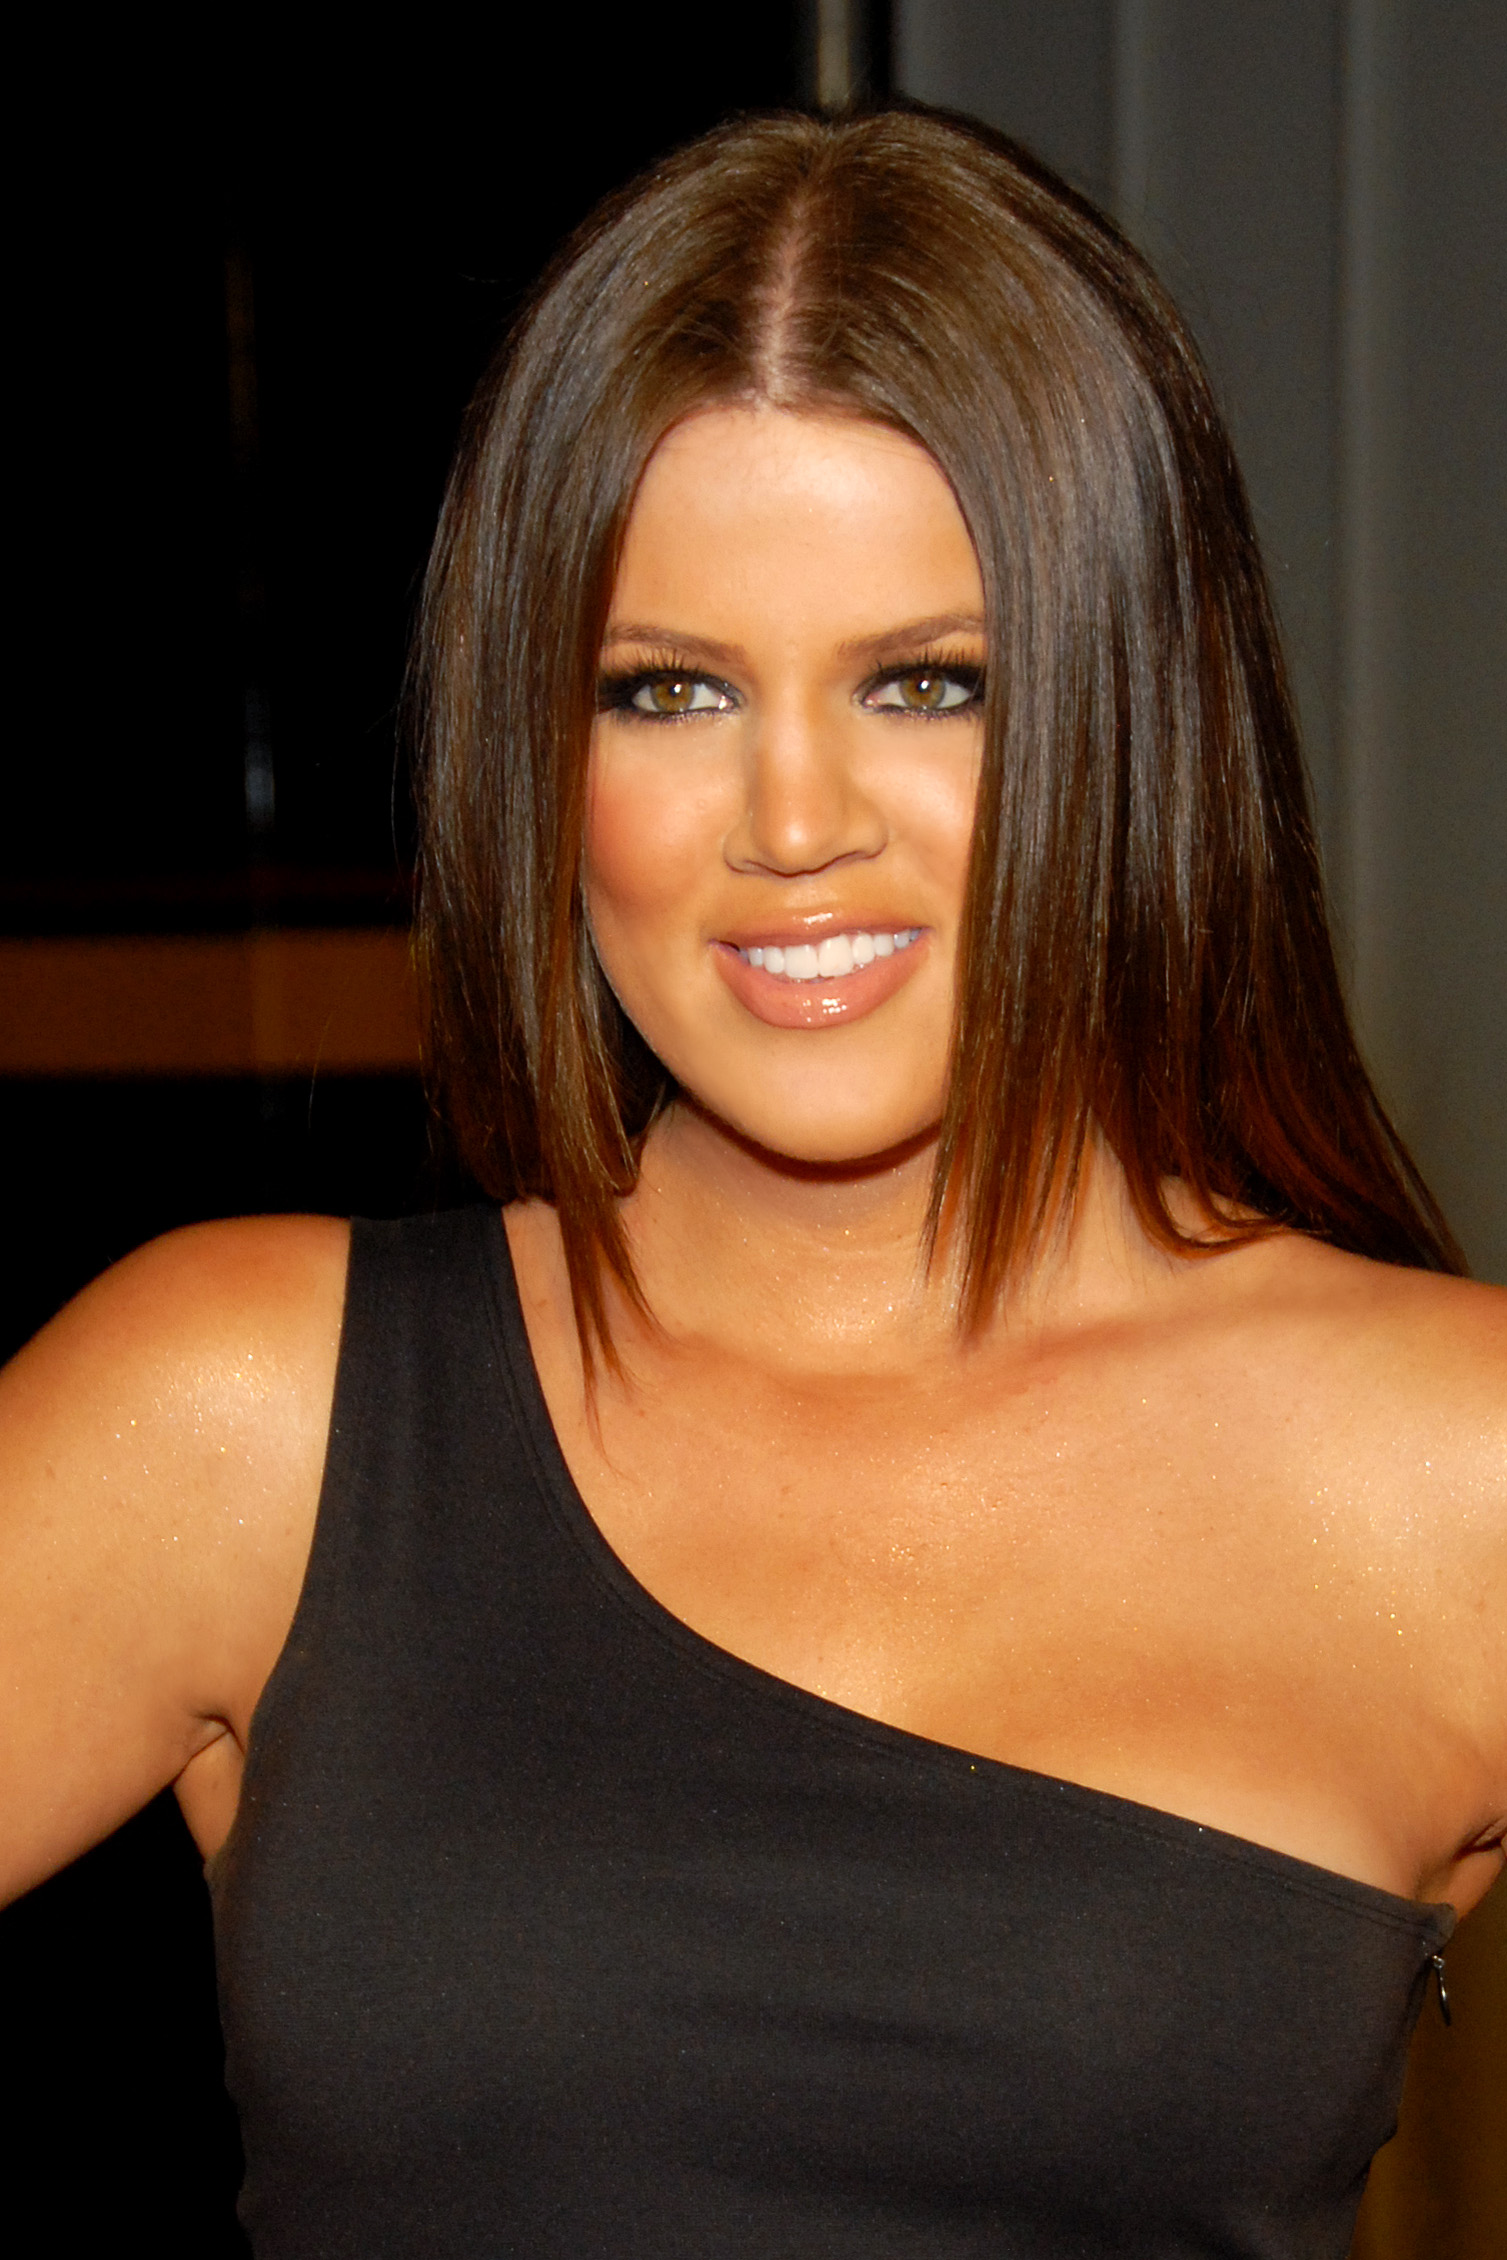 What is Kloe Kardashian's height?